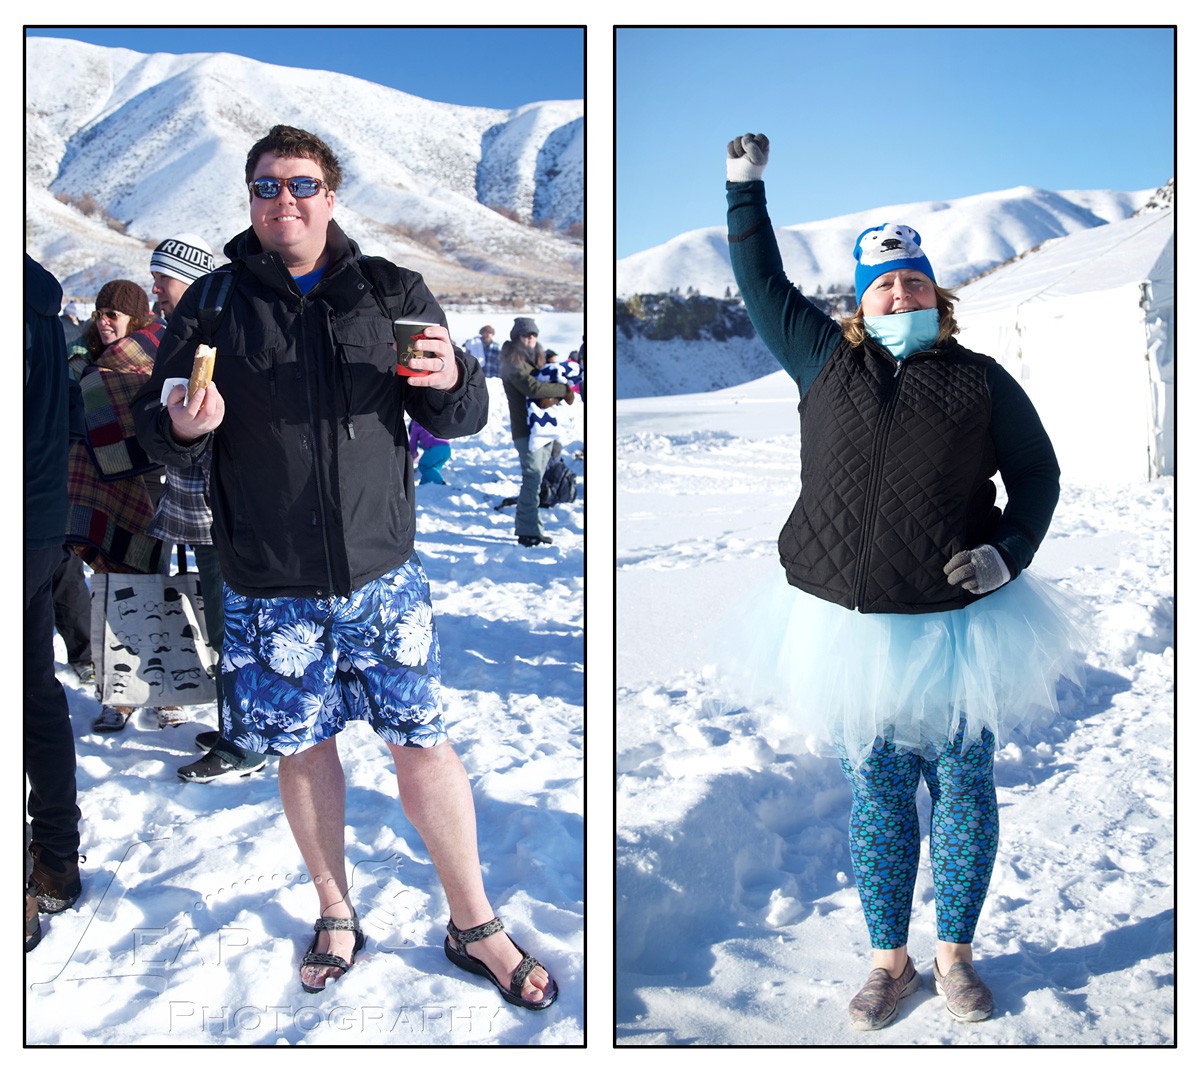 two participants of the Polar Bear Plunge